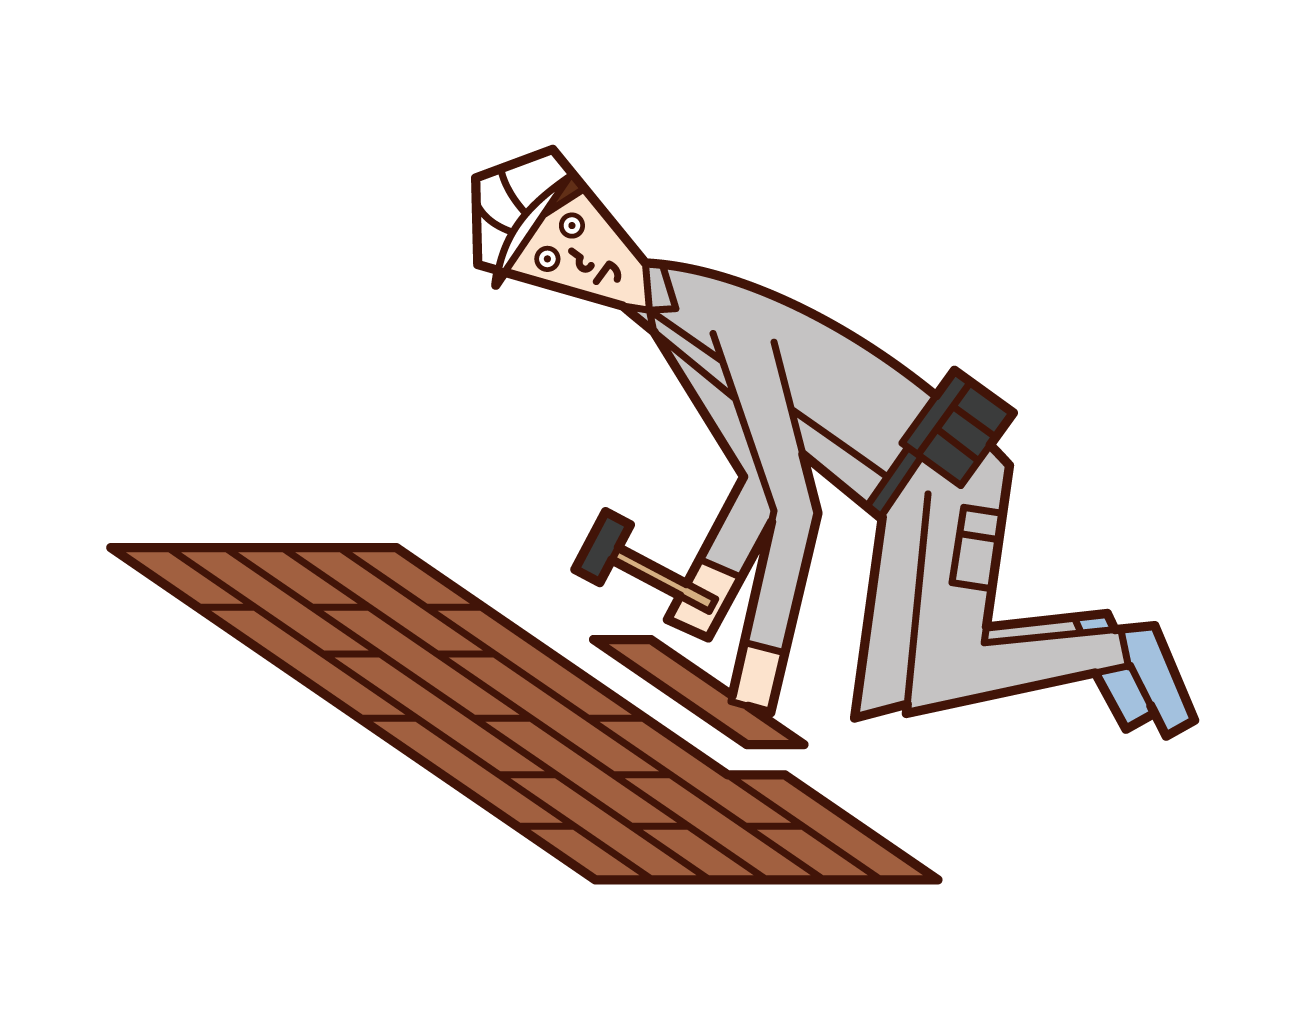 Illustration of a person who pastes flooring and a person (man) who works on interior construction